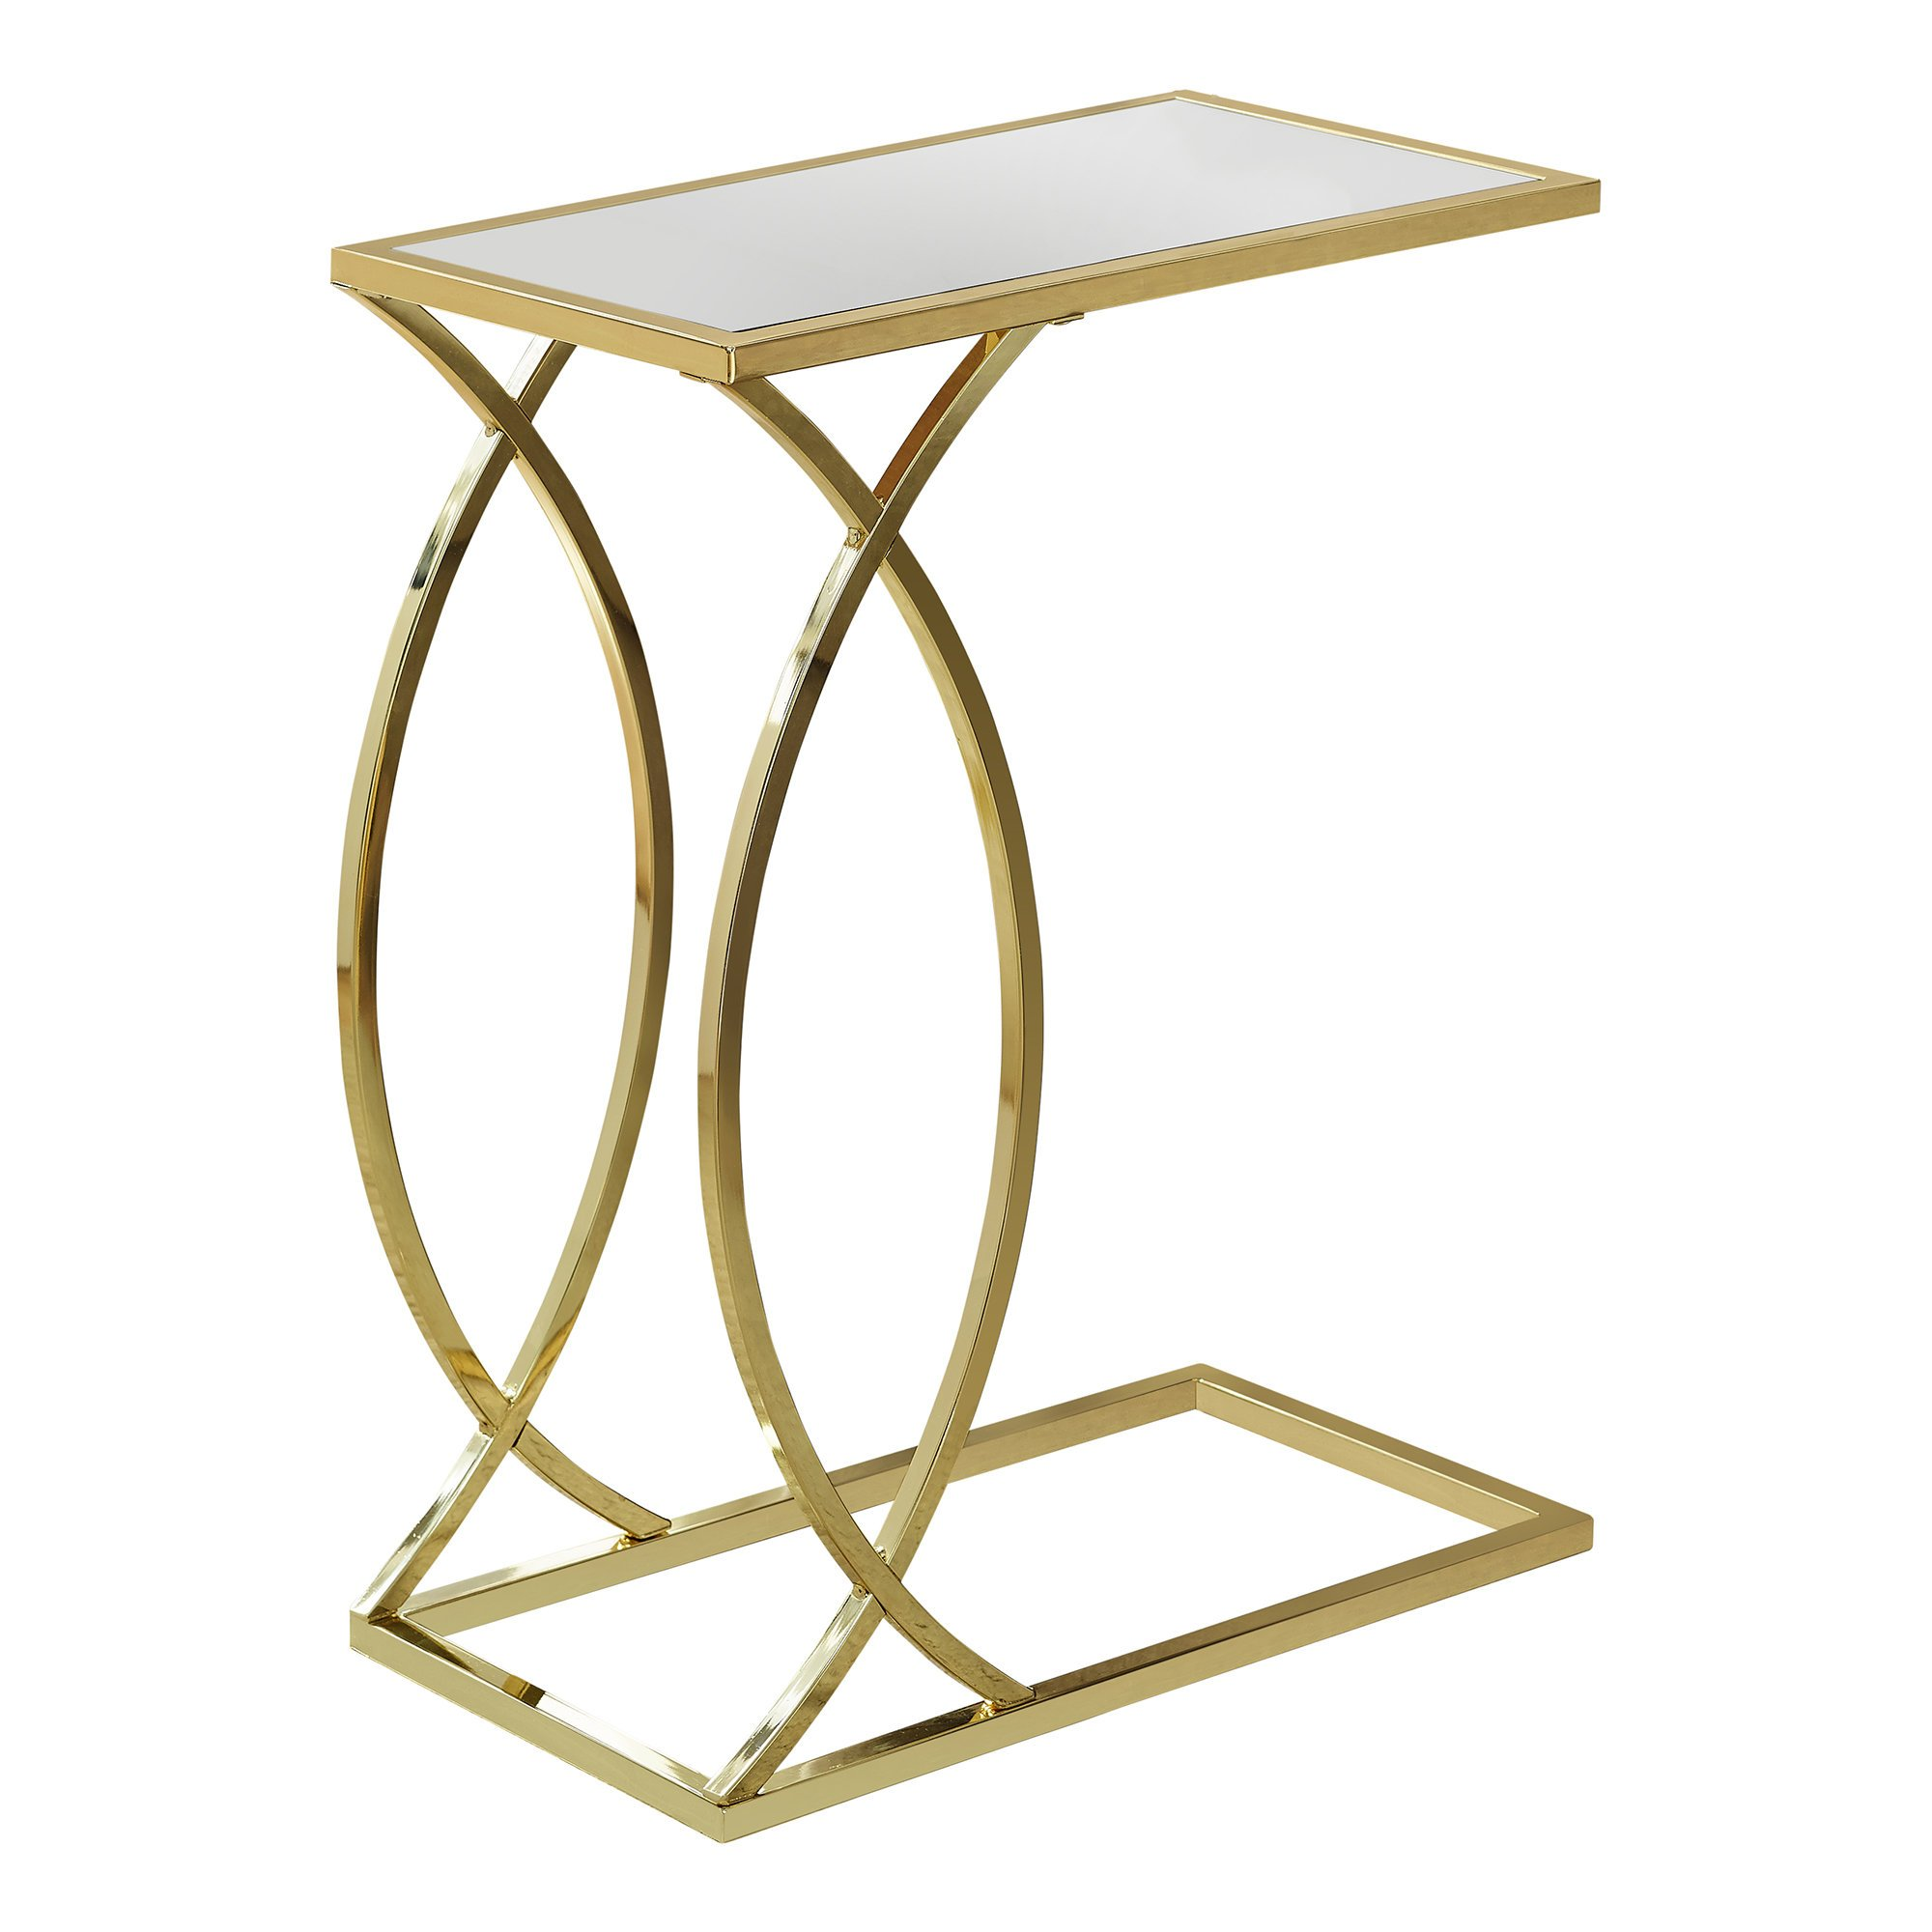 monarch metal and glass accent table gold finish gwg round pedestal dining gray coffee tan plastic tablecloths with top cherry wood bedroom furniture garage threshold seal ikea